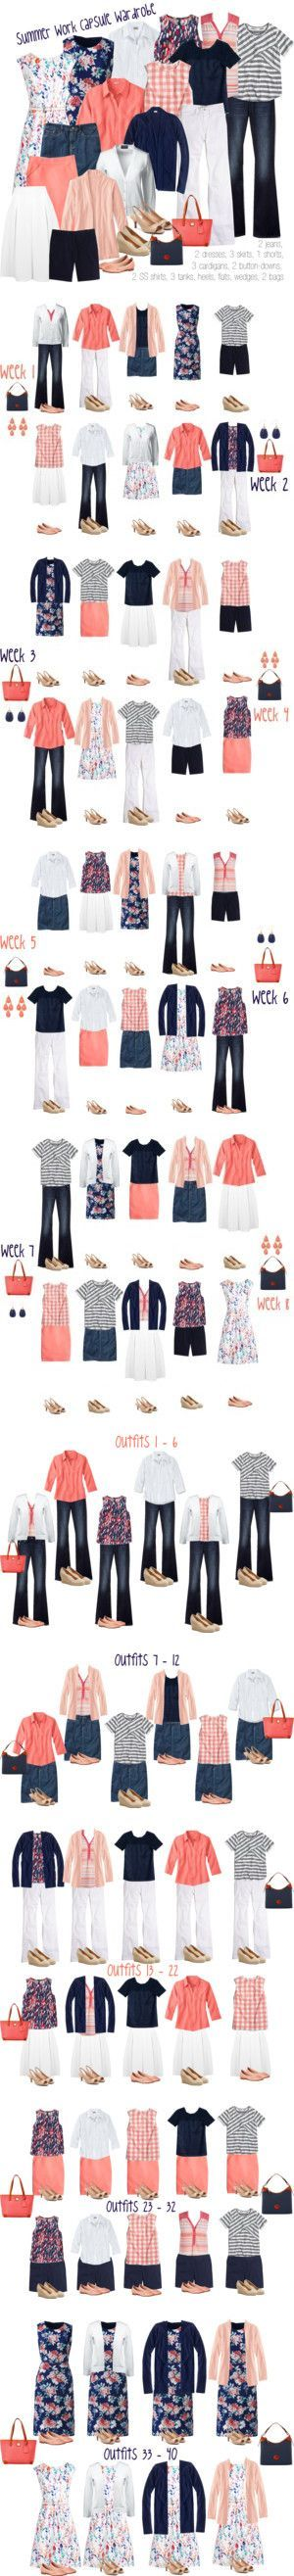 Southern Summer work capsule wardrobe: navy & coral by kristin727 on Polyvore featuring Lands' End, Gap, Boden, J.Crew, Madewell, Miss Selfridge and Dooney & Bourke